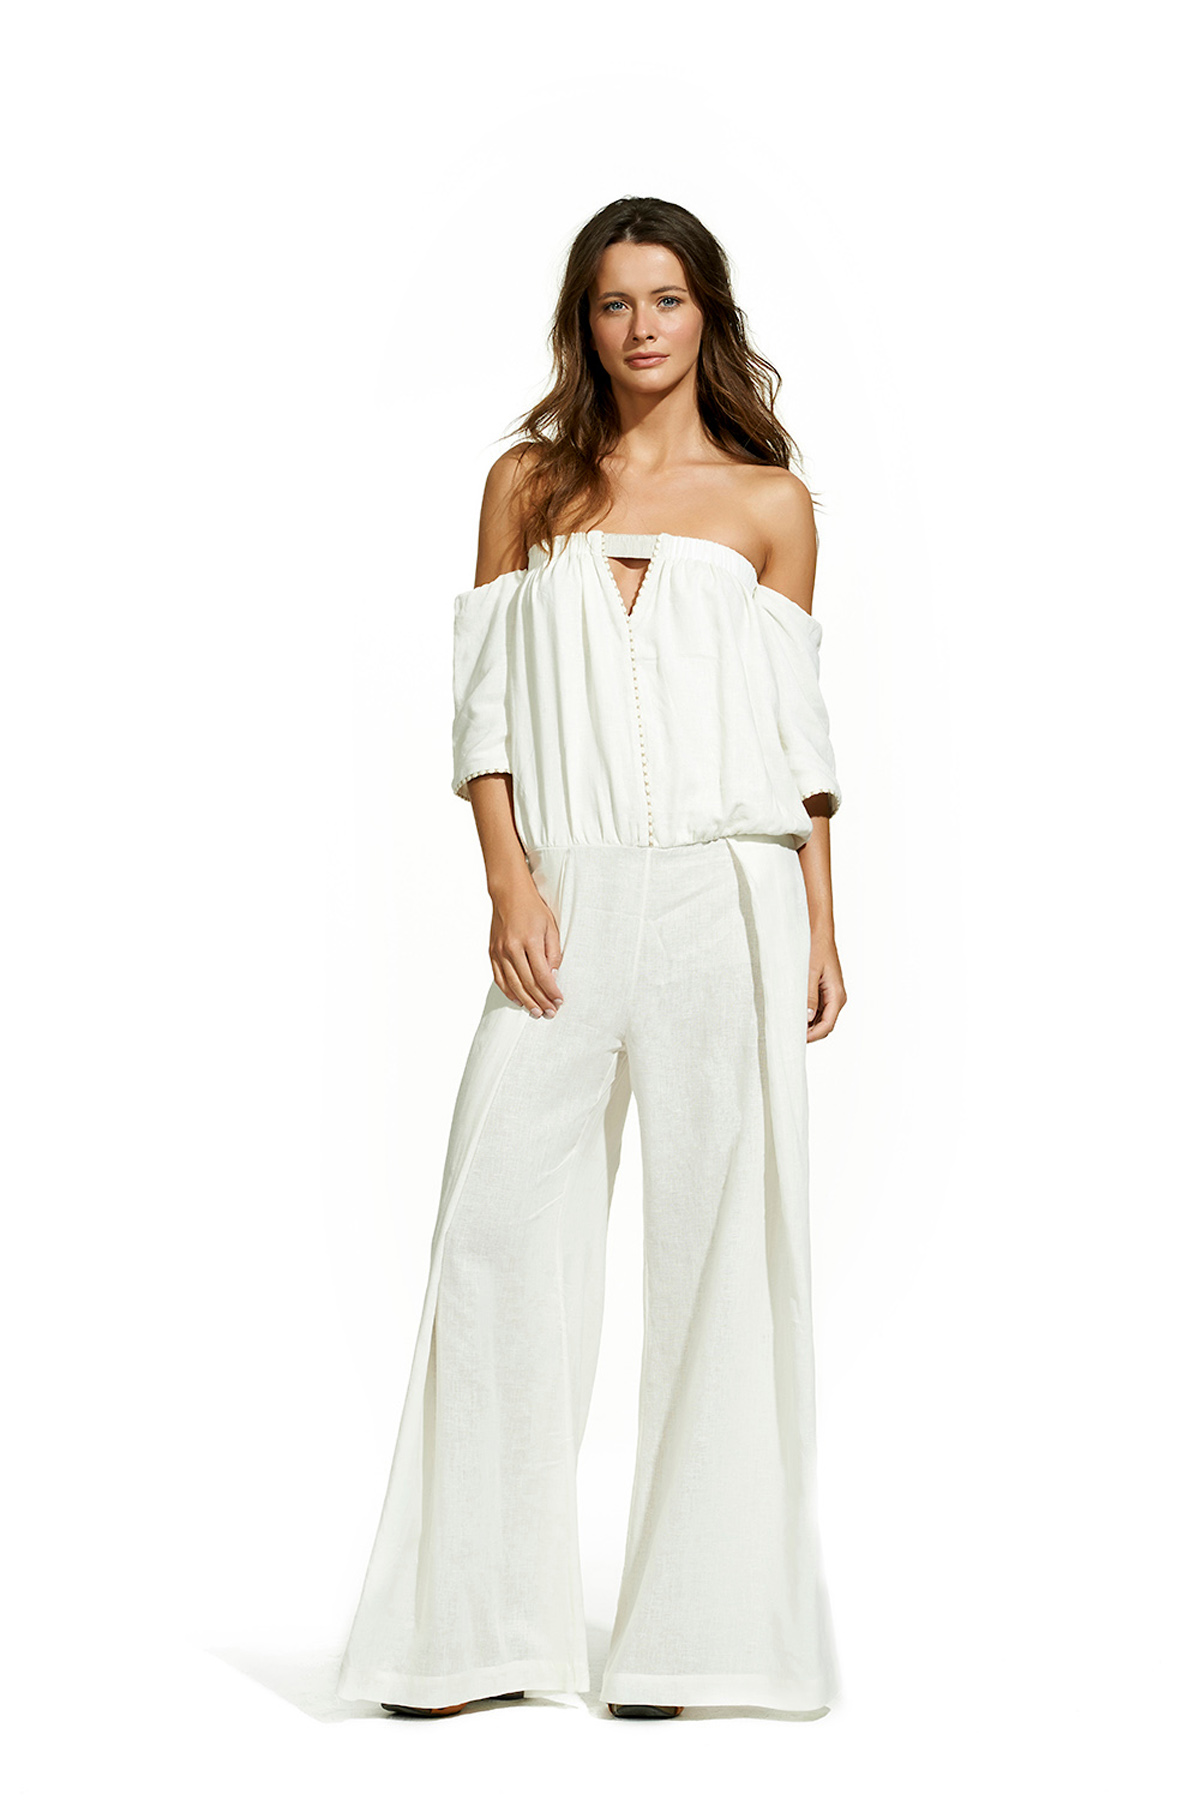 22-off-white-strapless-jumpsuit-vs172070-003-copiar